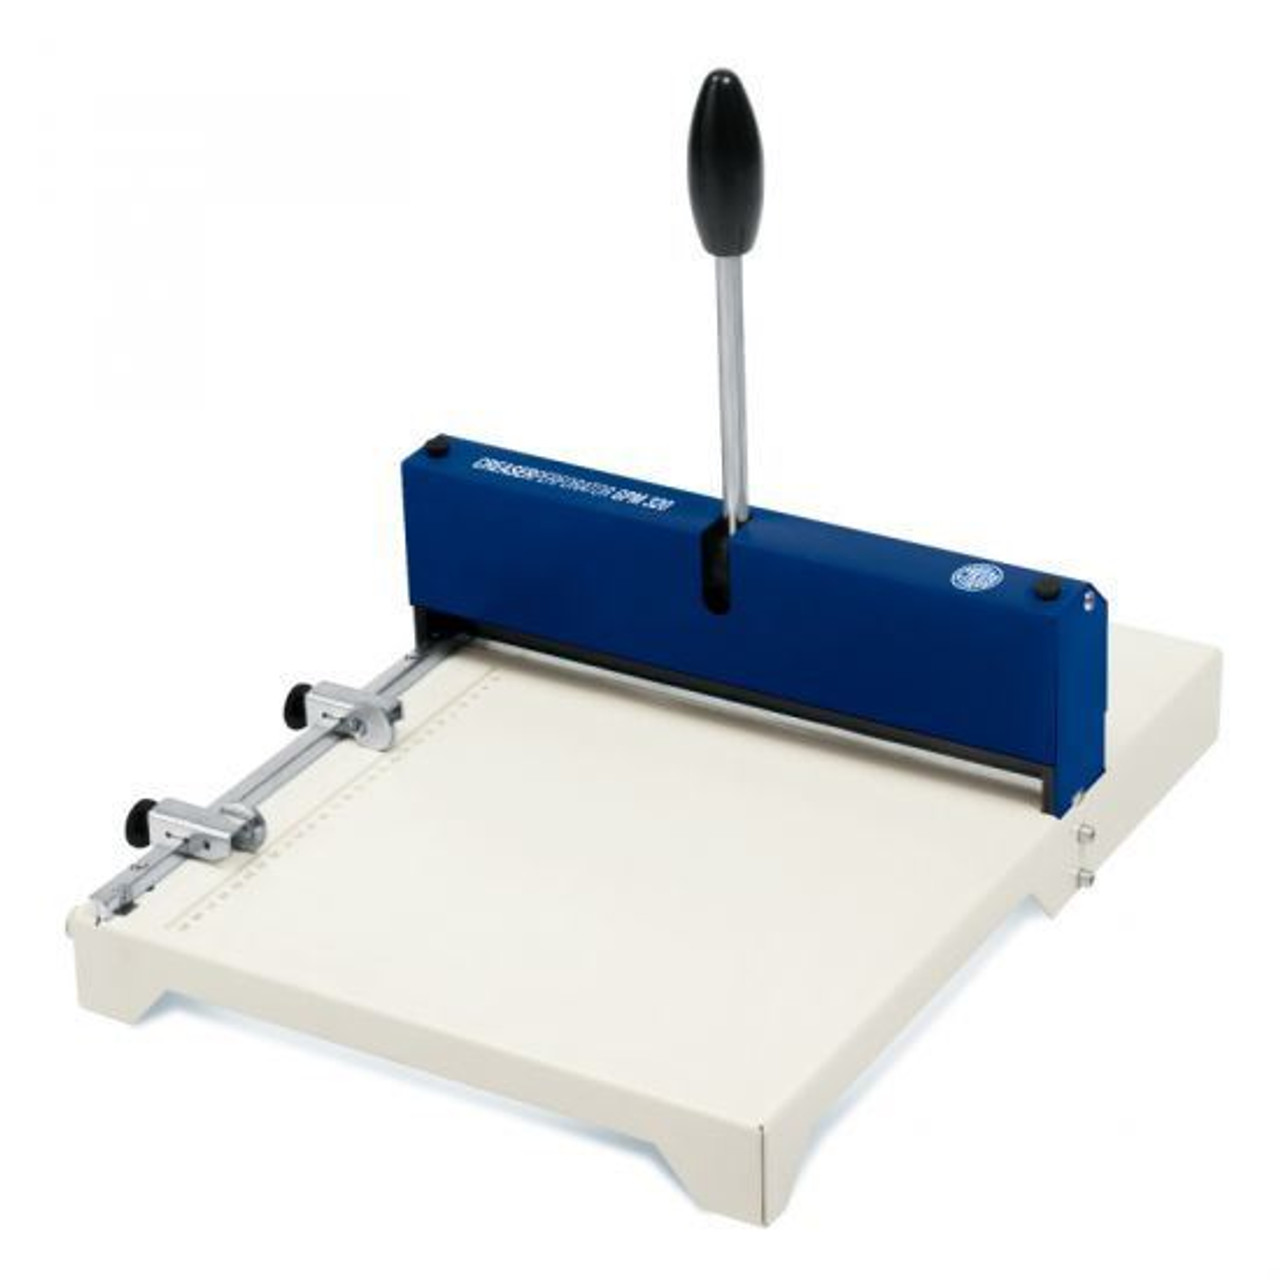 Cyklos GPM 320 Hand Driven Creasing and Perforating Machine